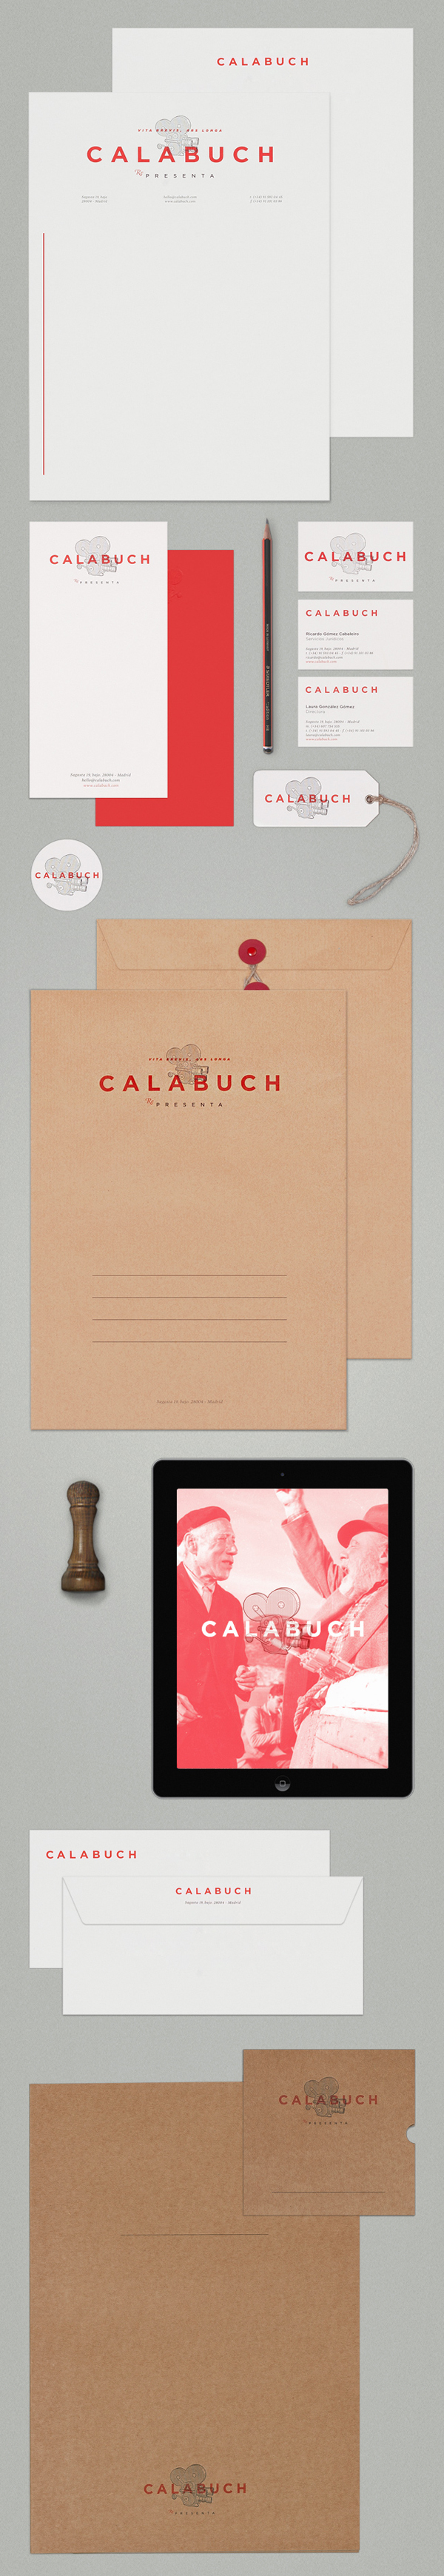 Logo, letterhead, business card and label for Spanish artist management service Calabuch developed by Tres Tipos Graficos